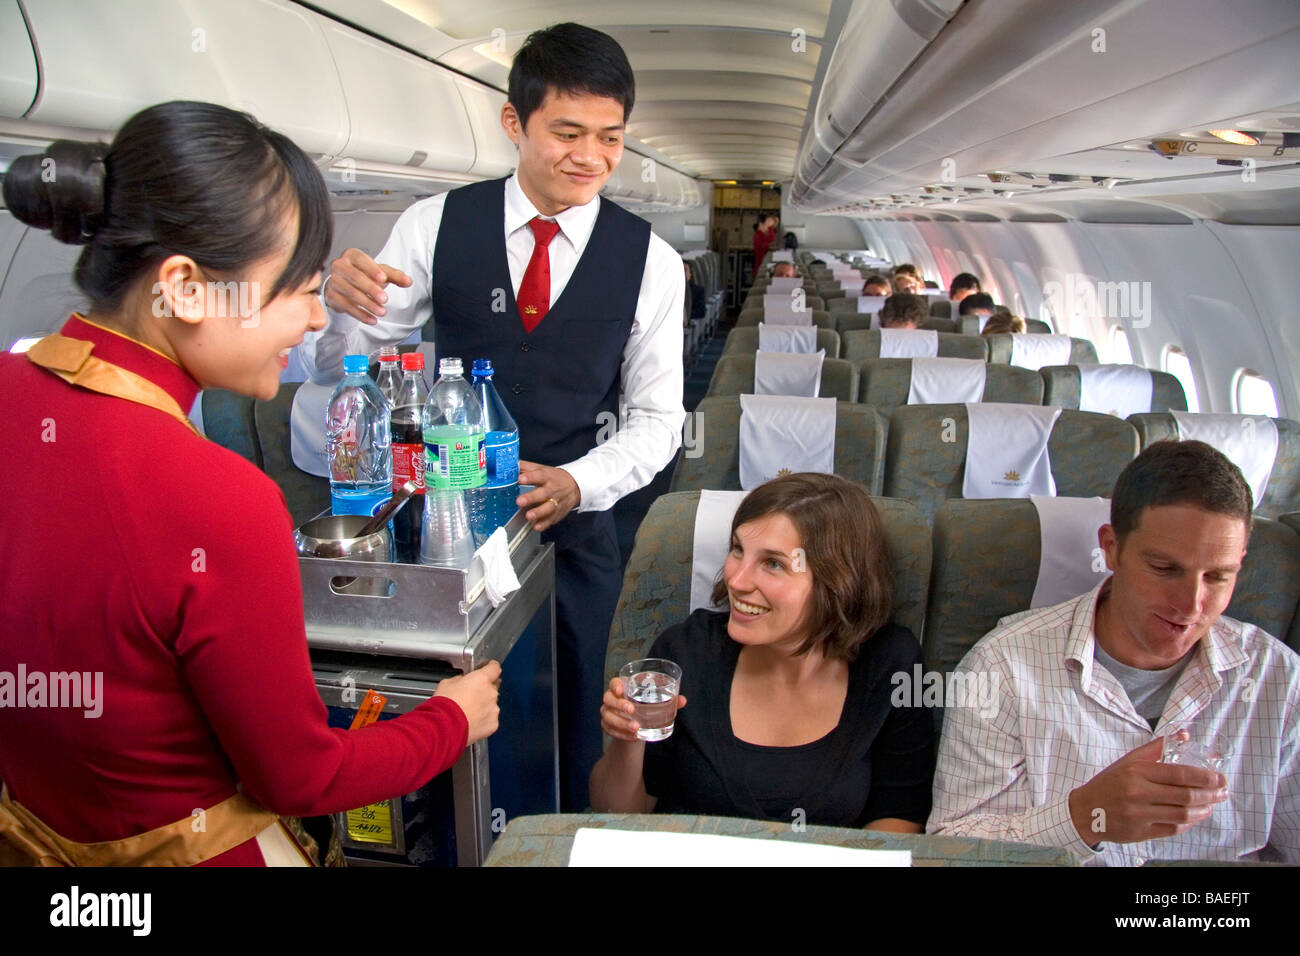 flight attendants serve beverages to passengers on a